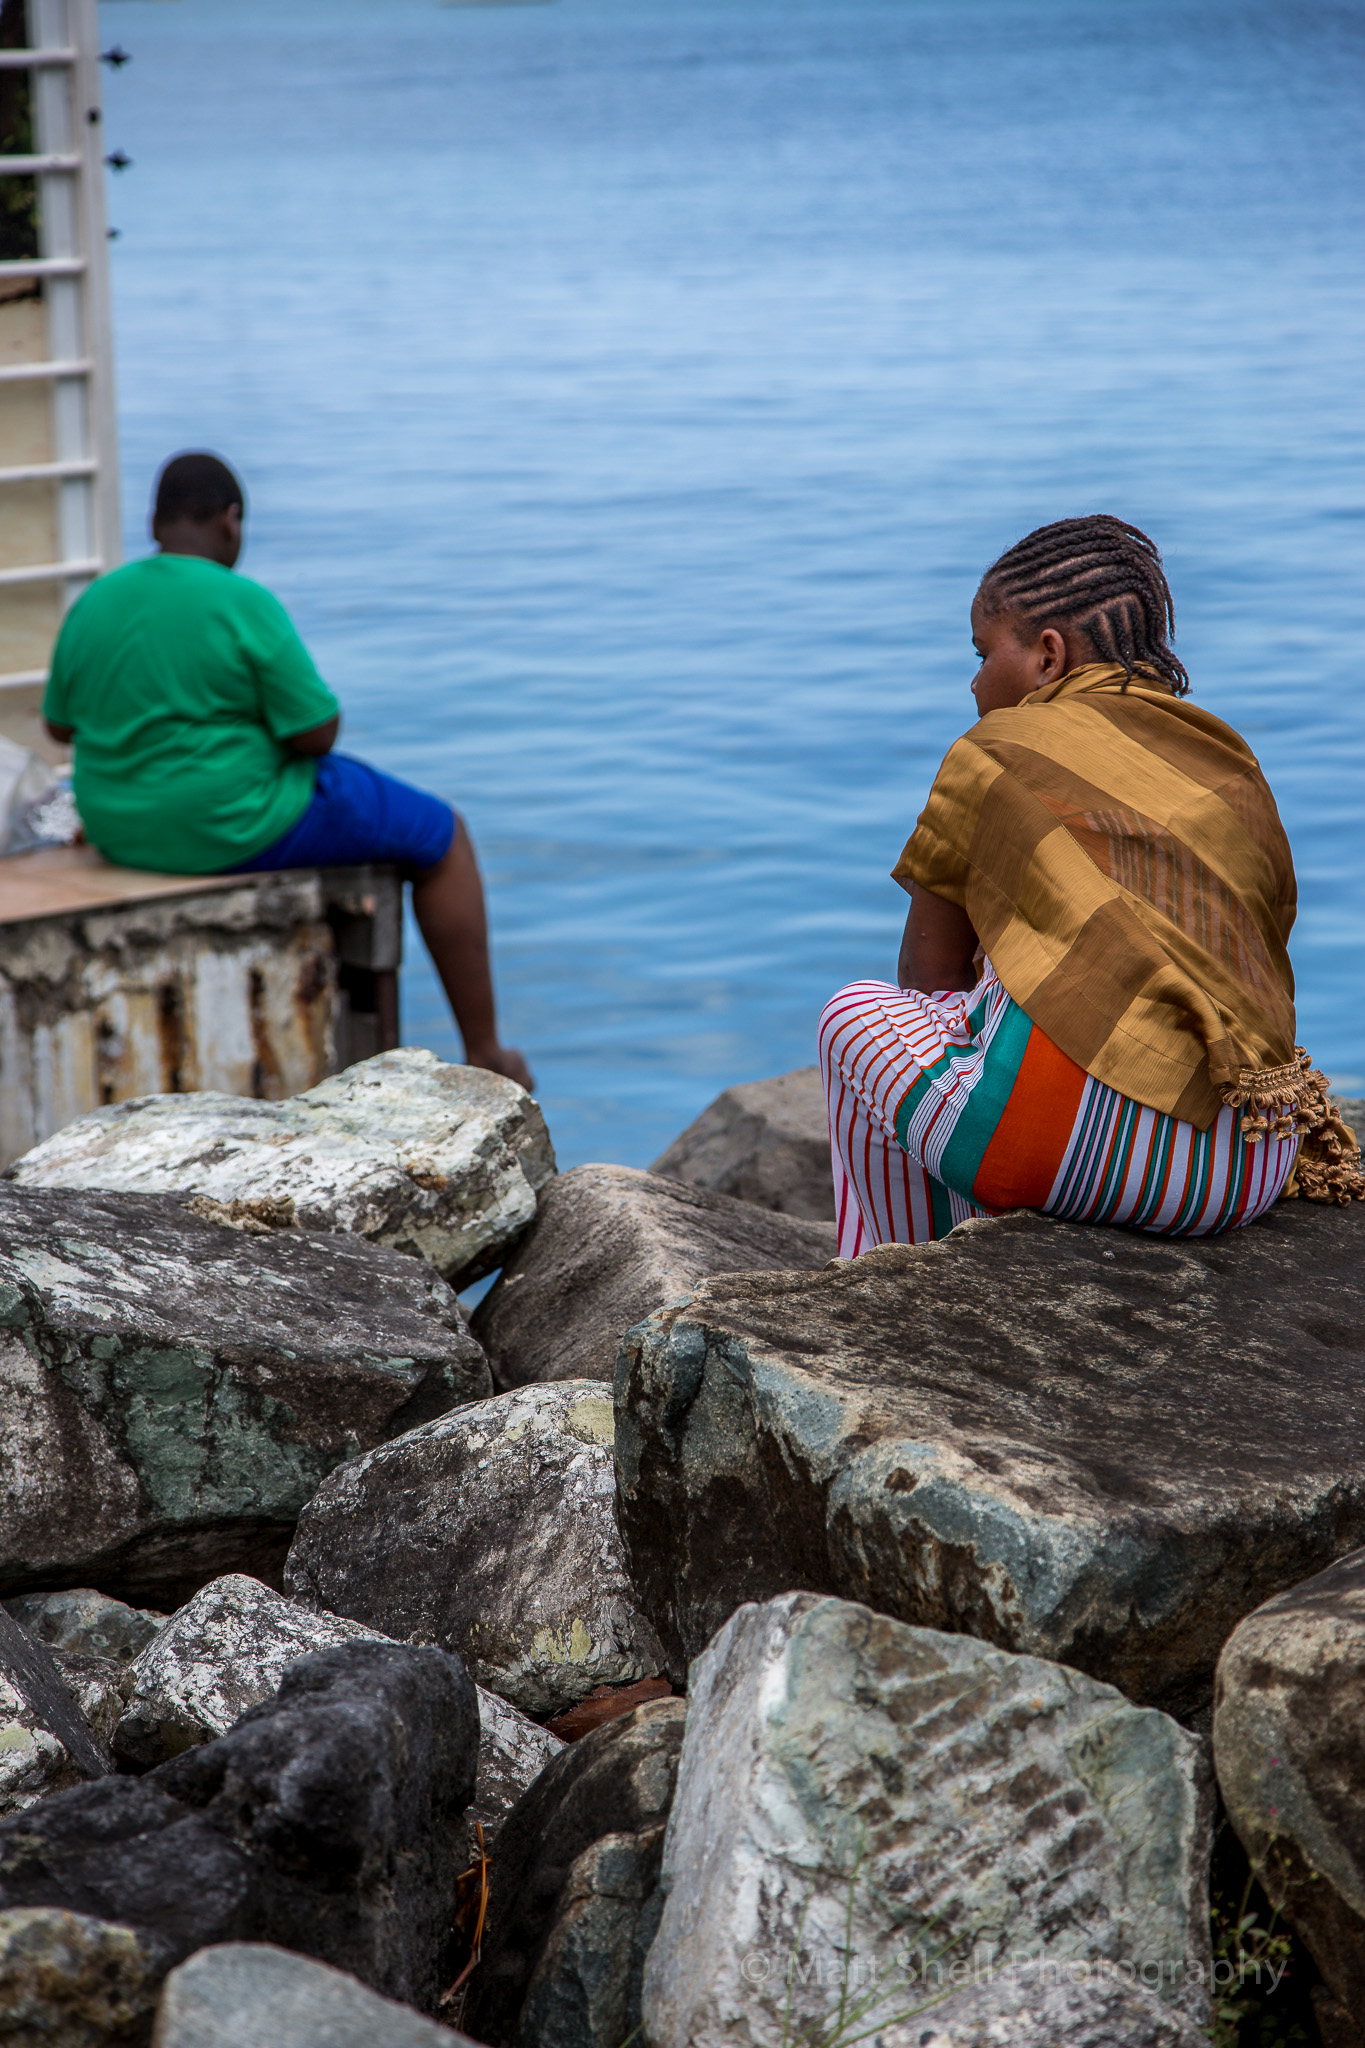 Saw these kids fishing in Marigot. A city on the french side of the island. Love how determined and focused they were and the colors they were wearing looked great.